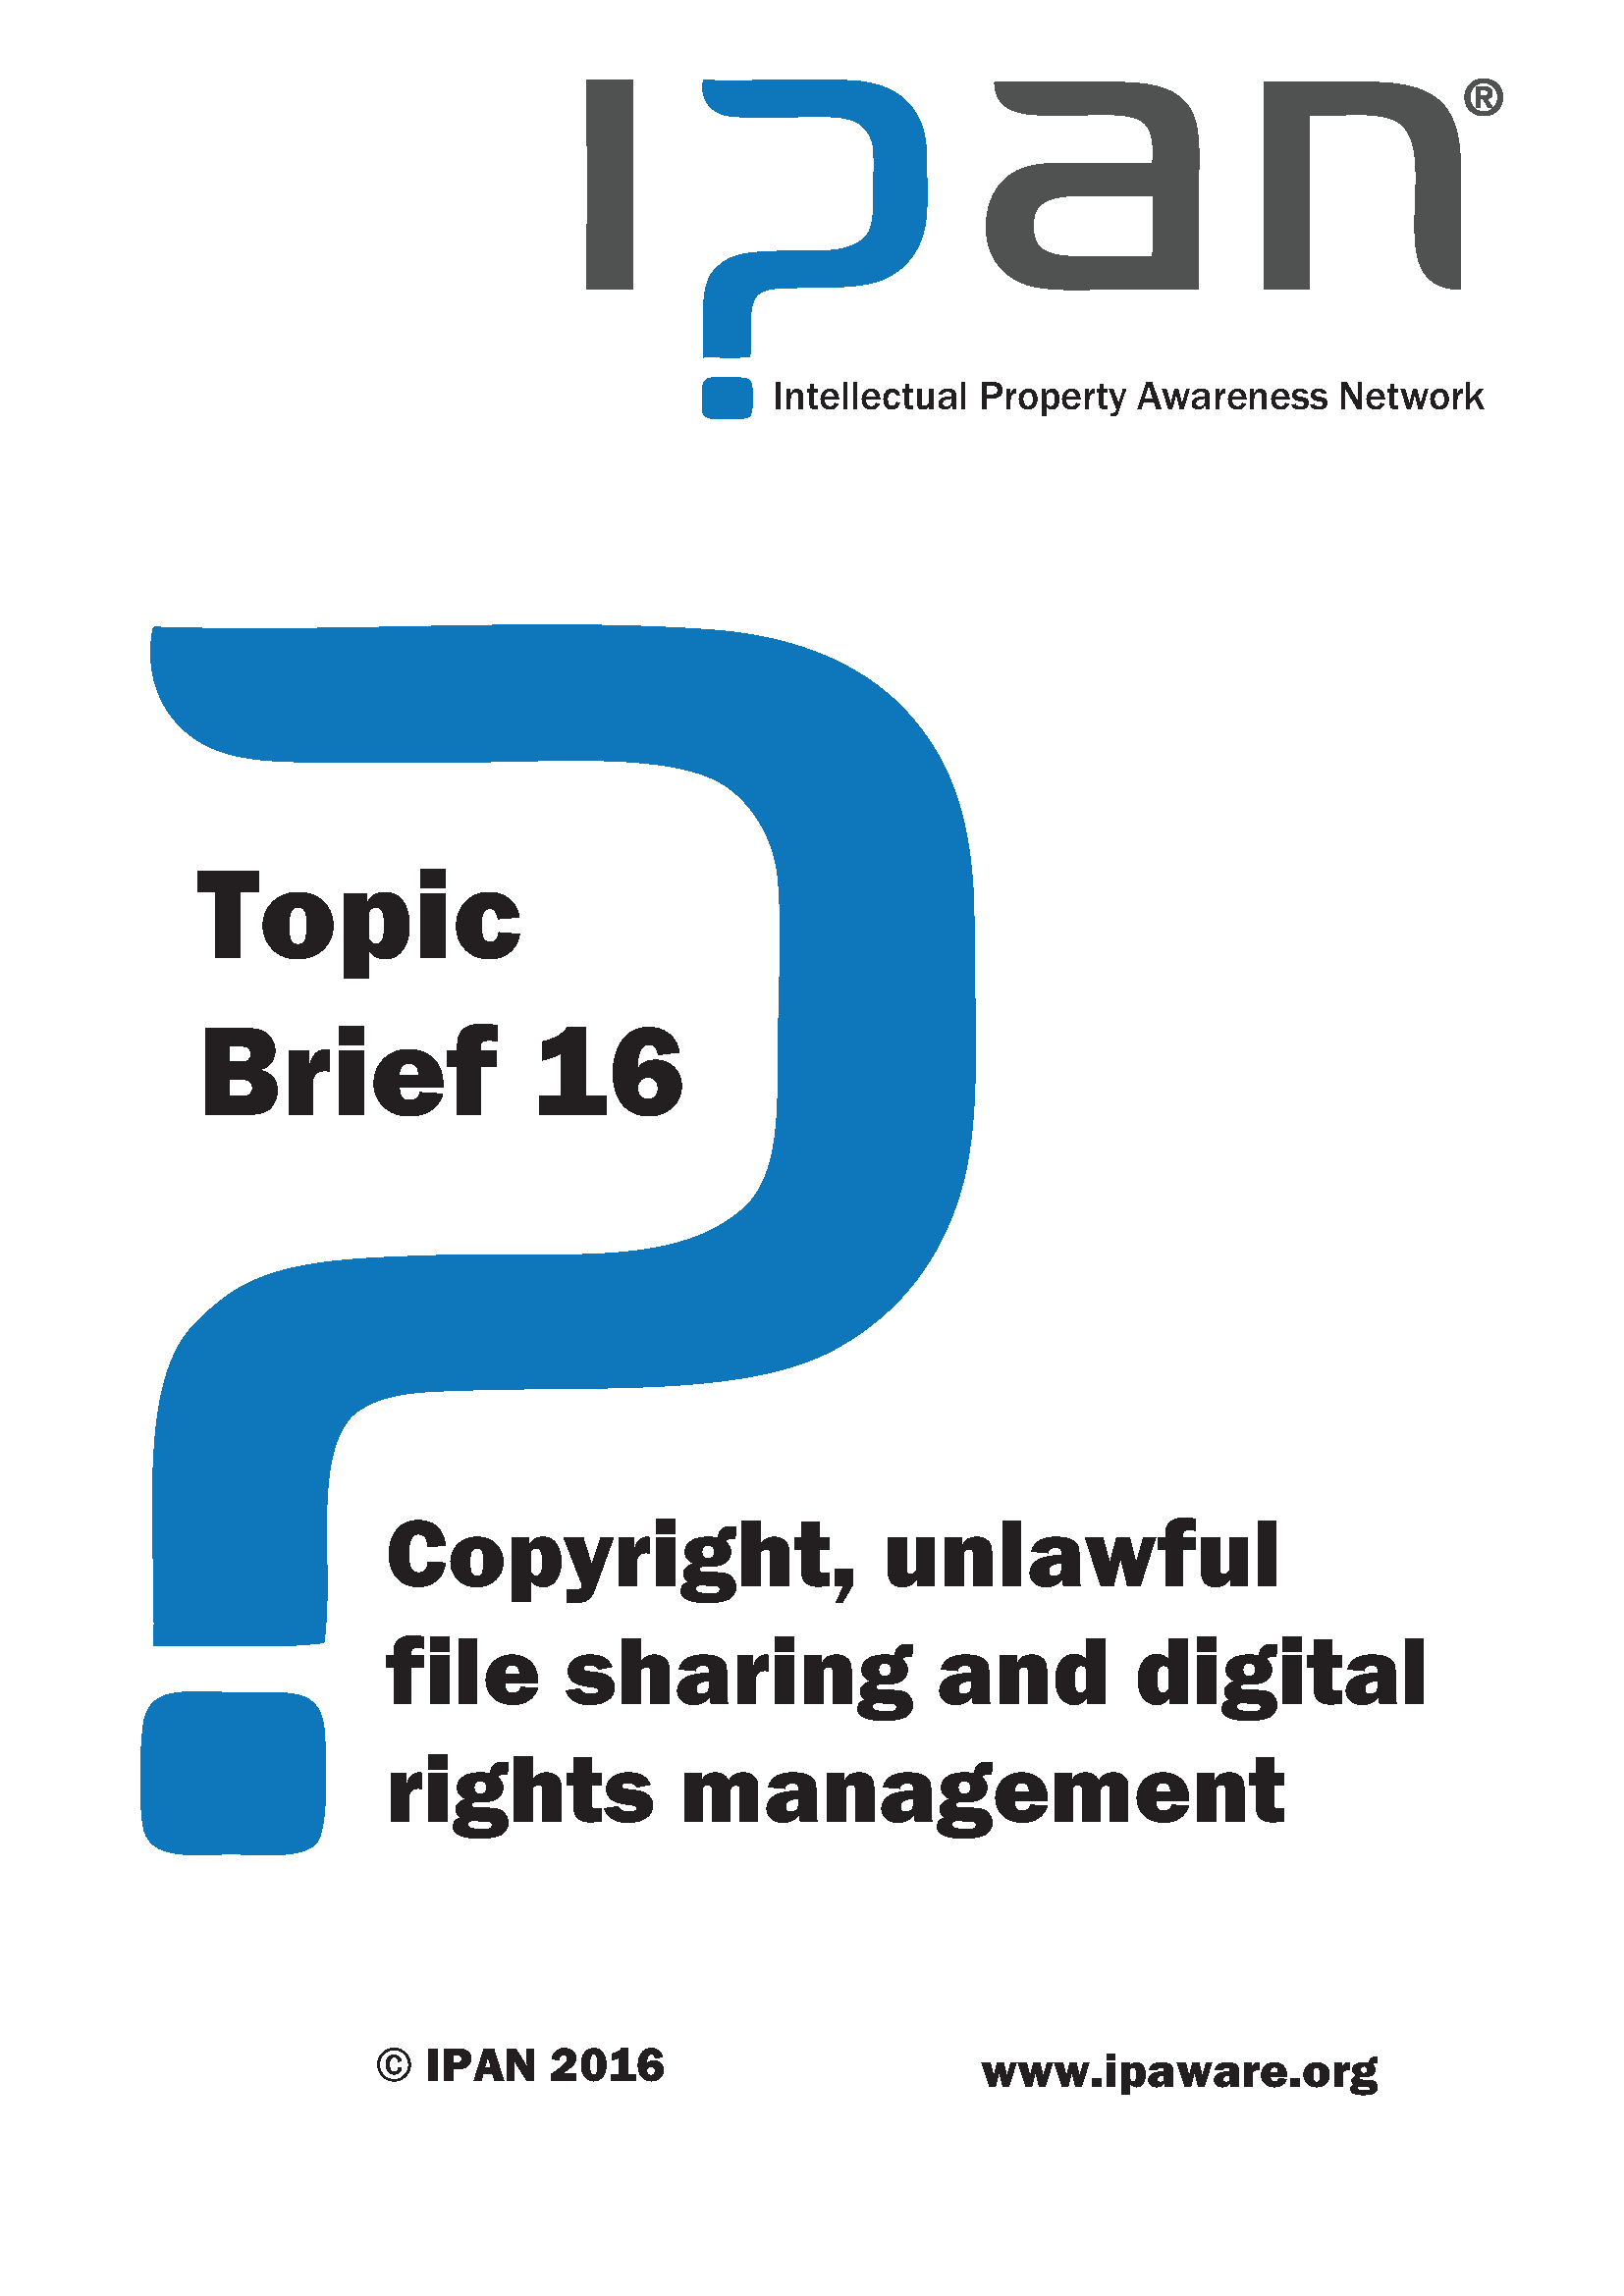 Copyright, unlawful file sharing and digital rights management